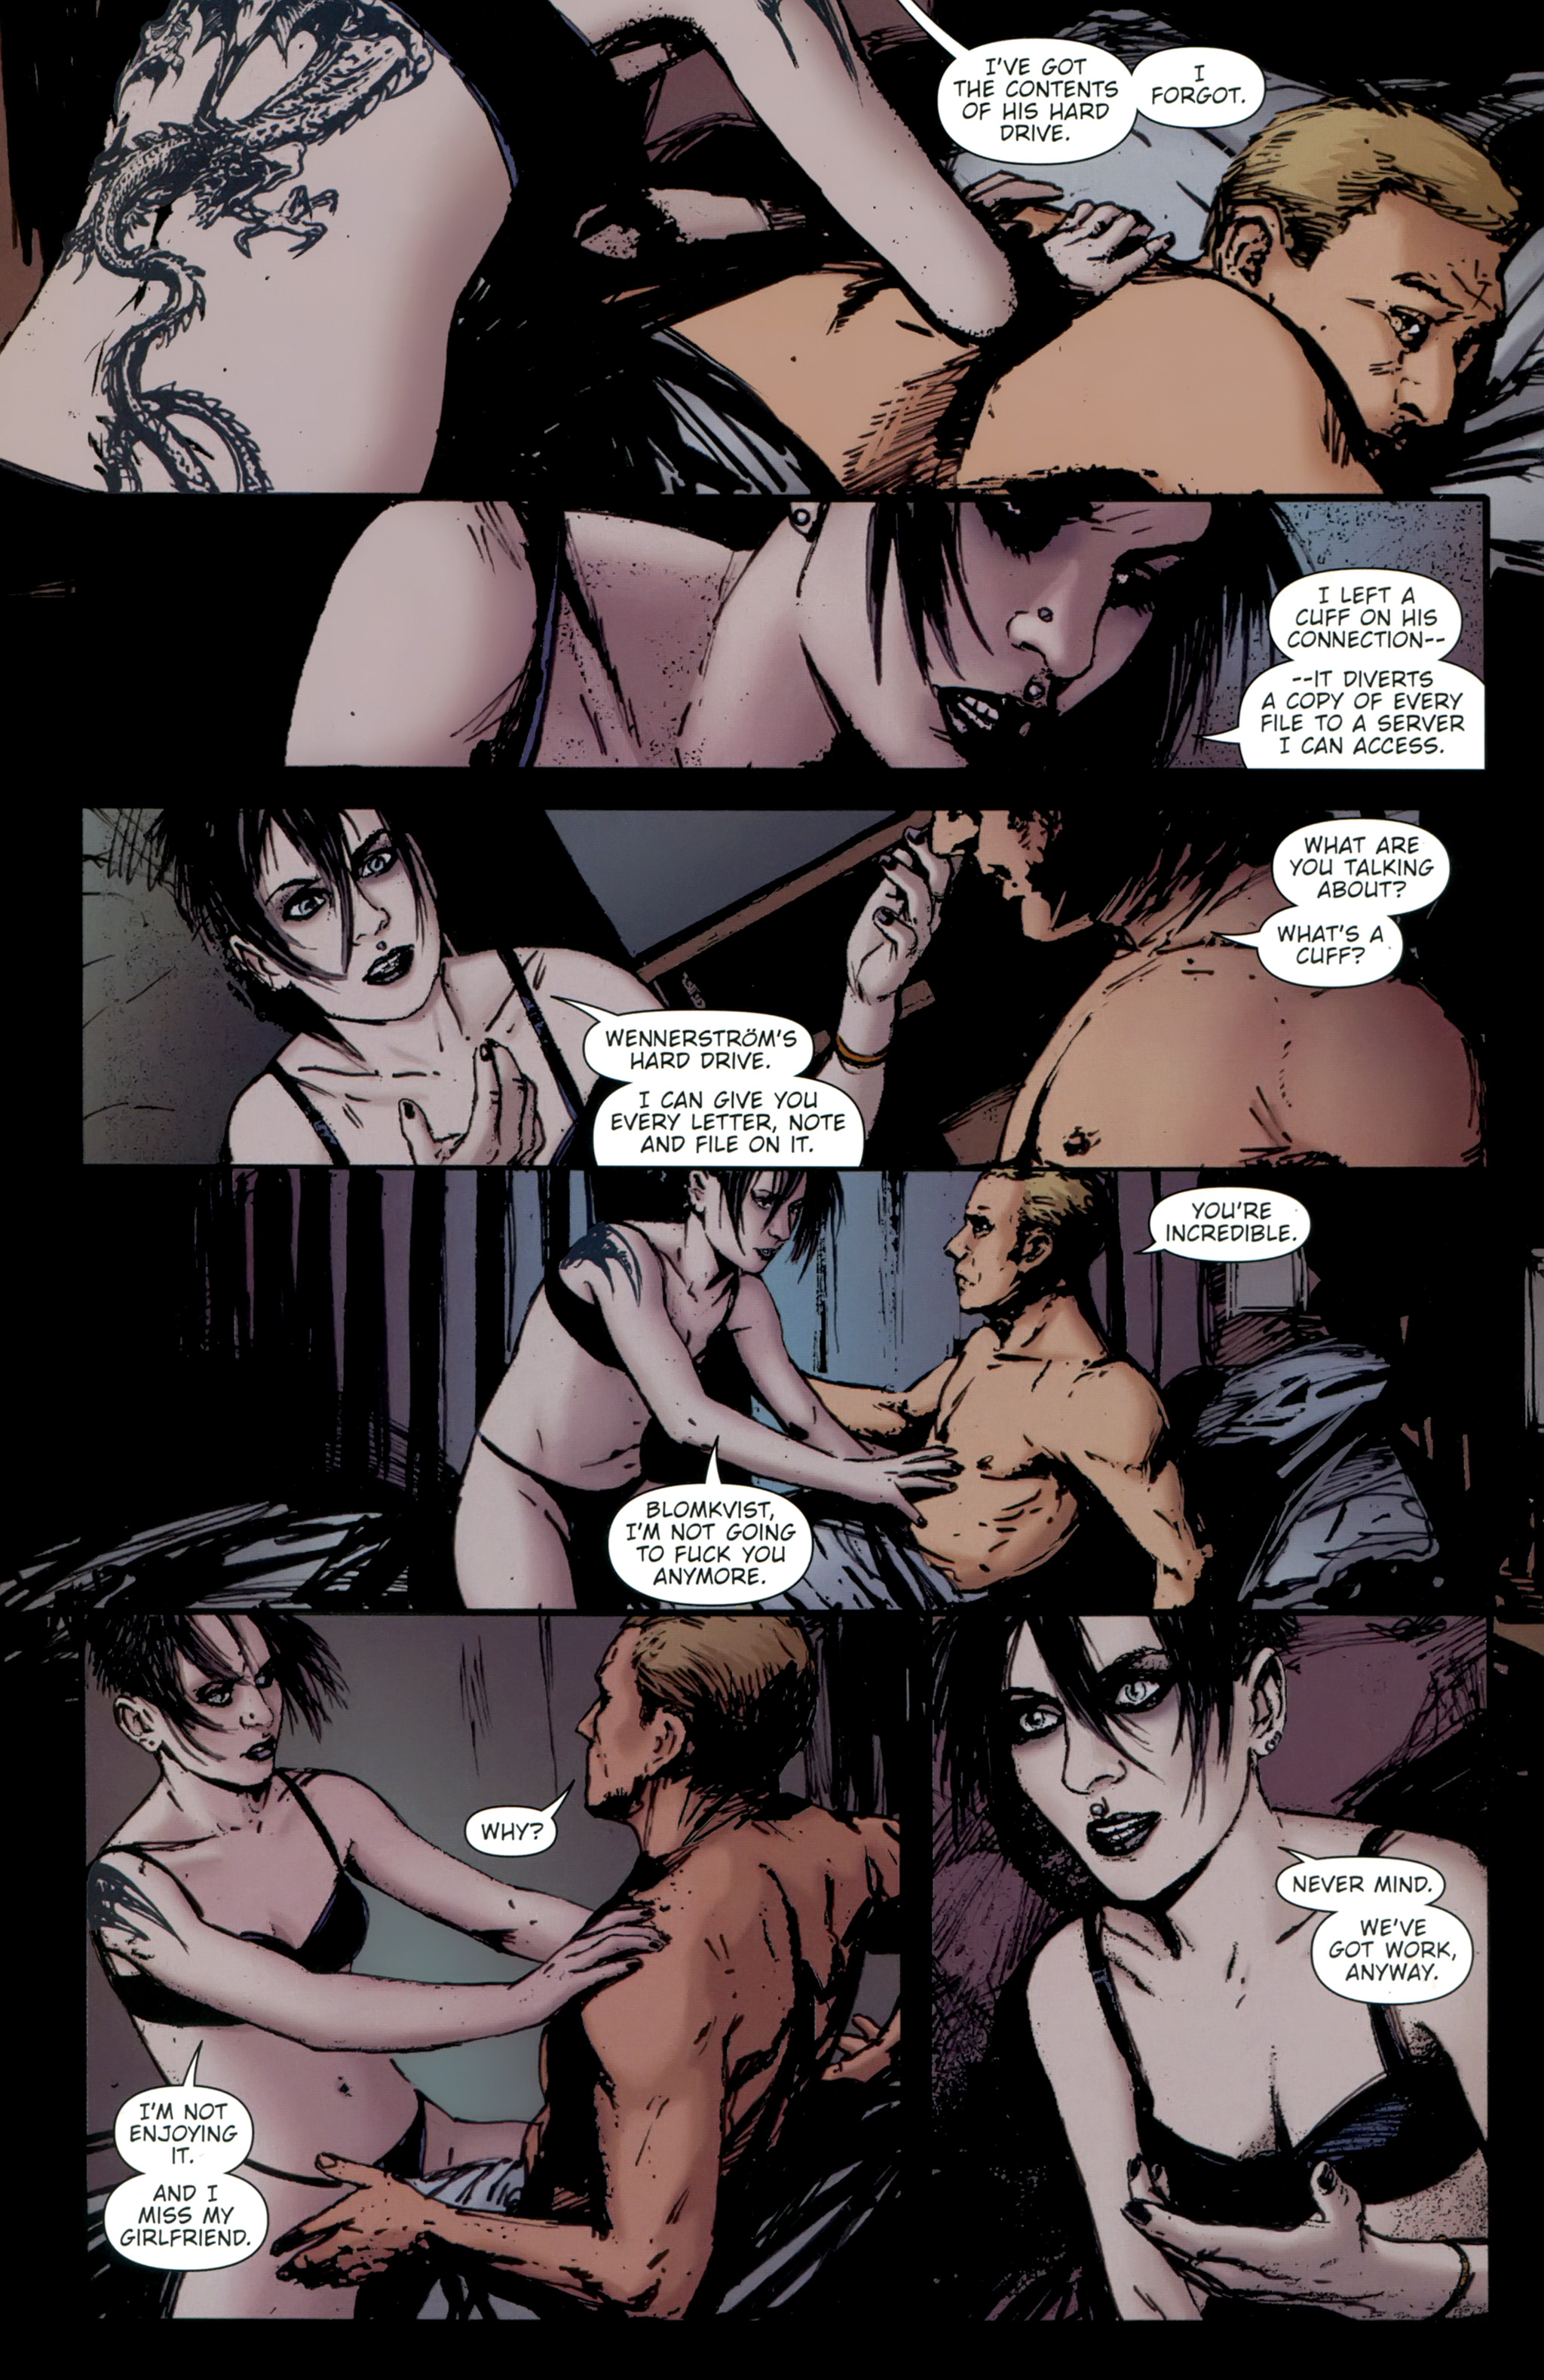 Read online The Girl With the Dragon Tattoo comic -  Issue # TPB 2 - 146